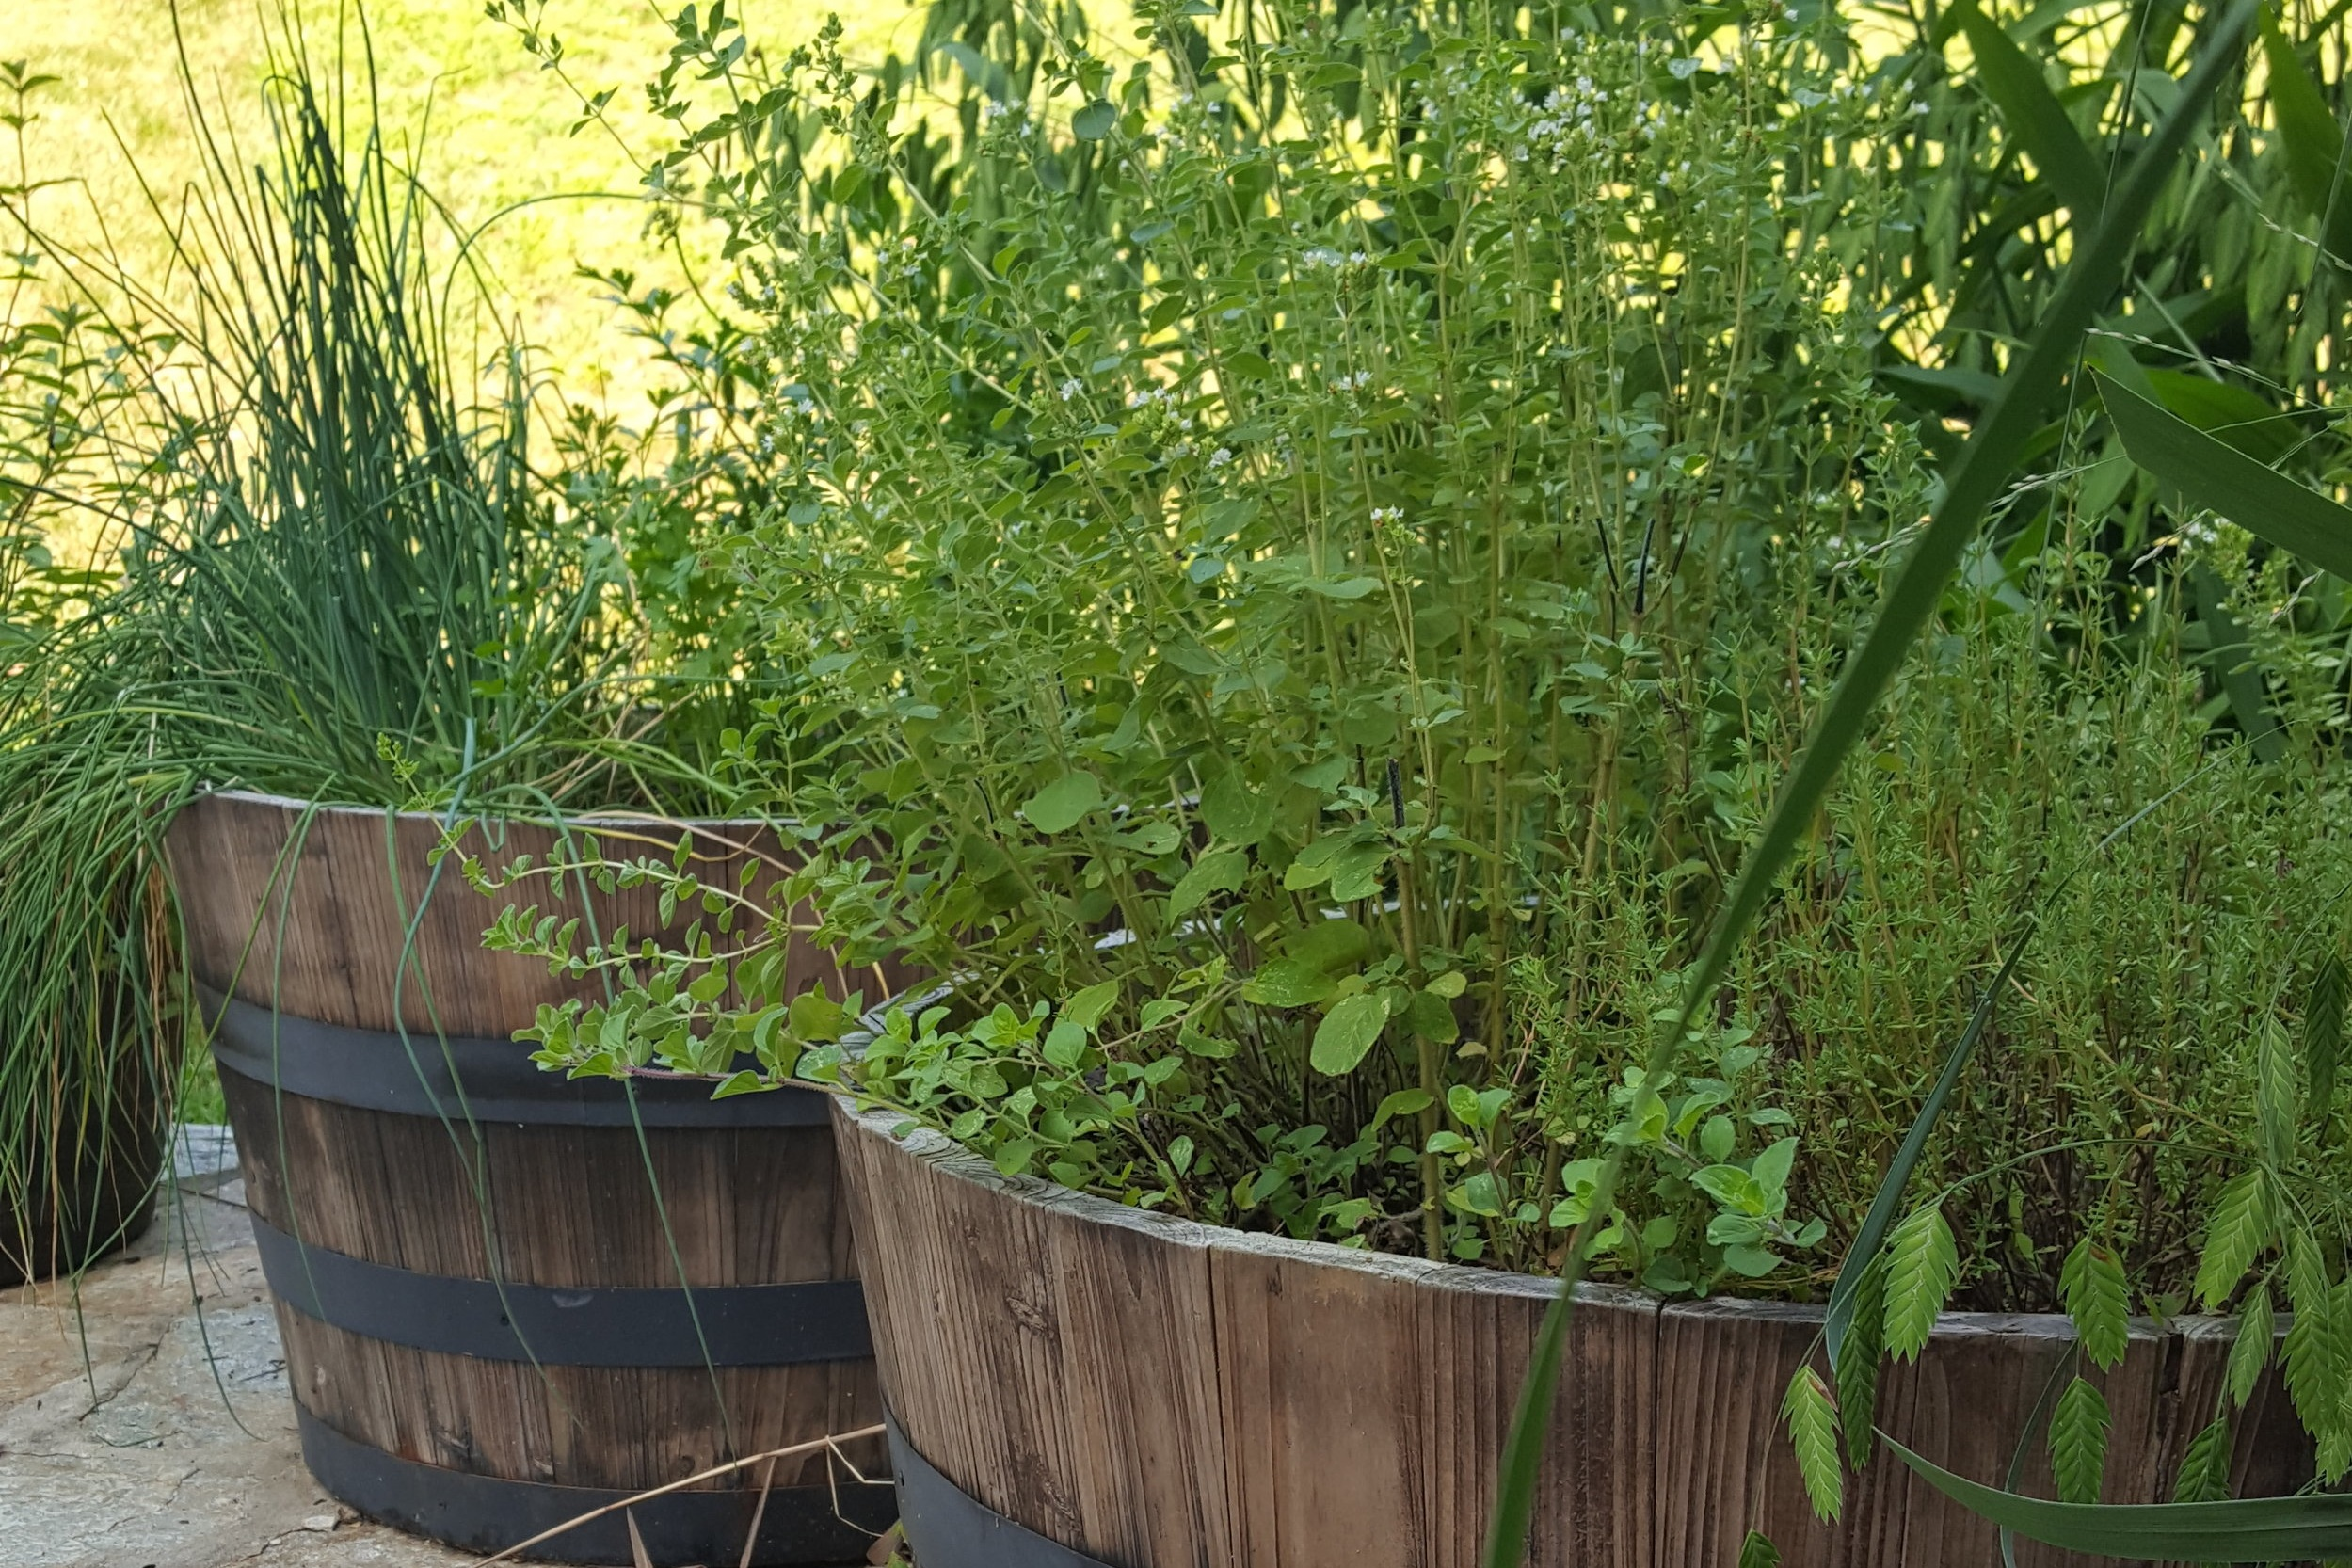 Half Whiskey Barrel - An aesthetic and productive container good for a variety of annual crops or several different culinary herbs.